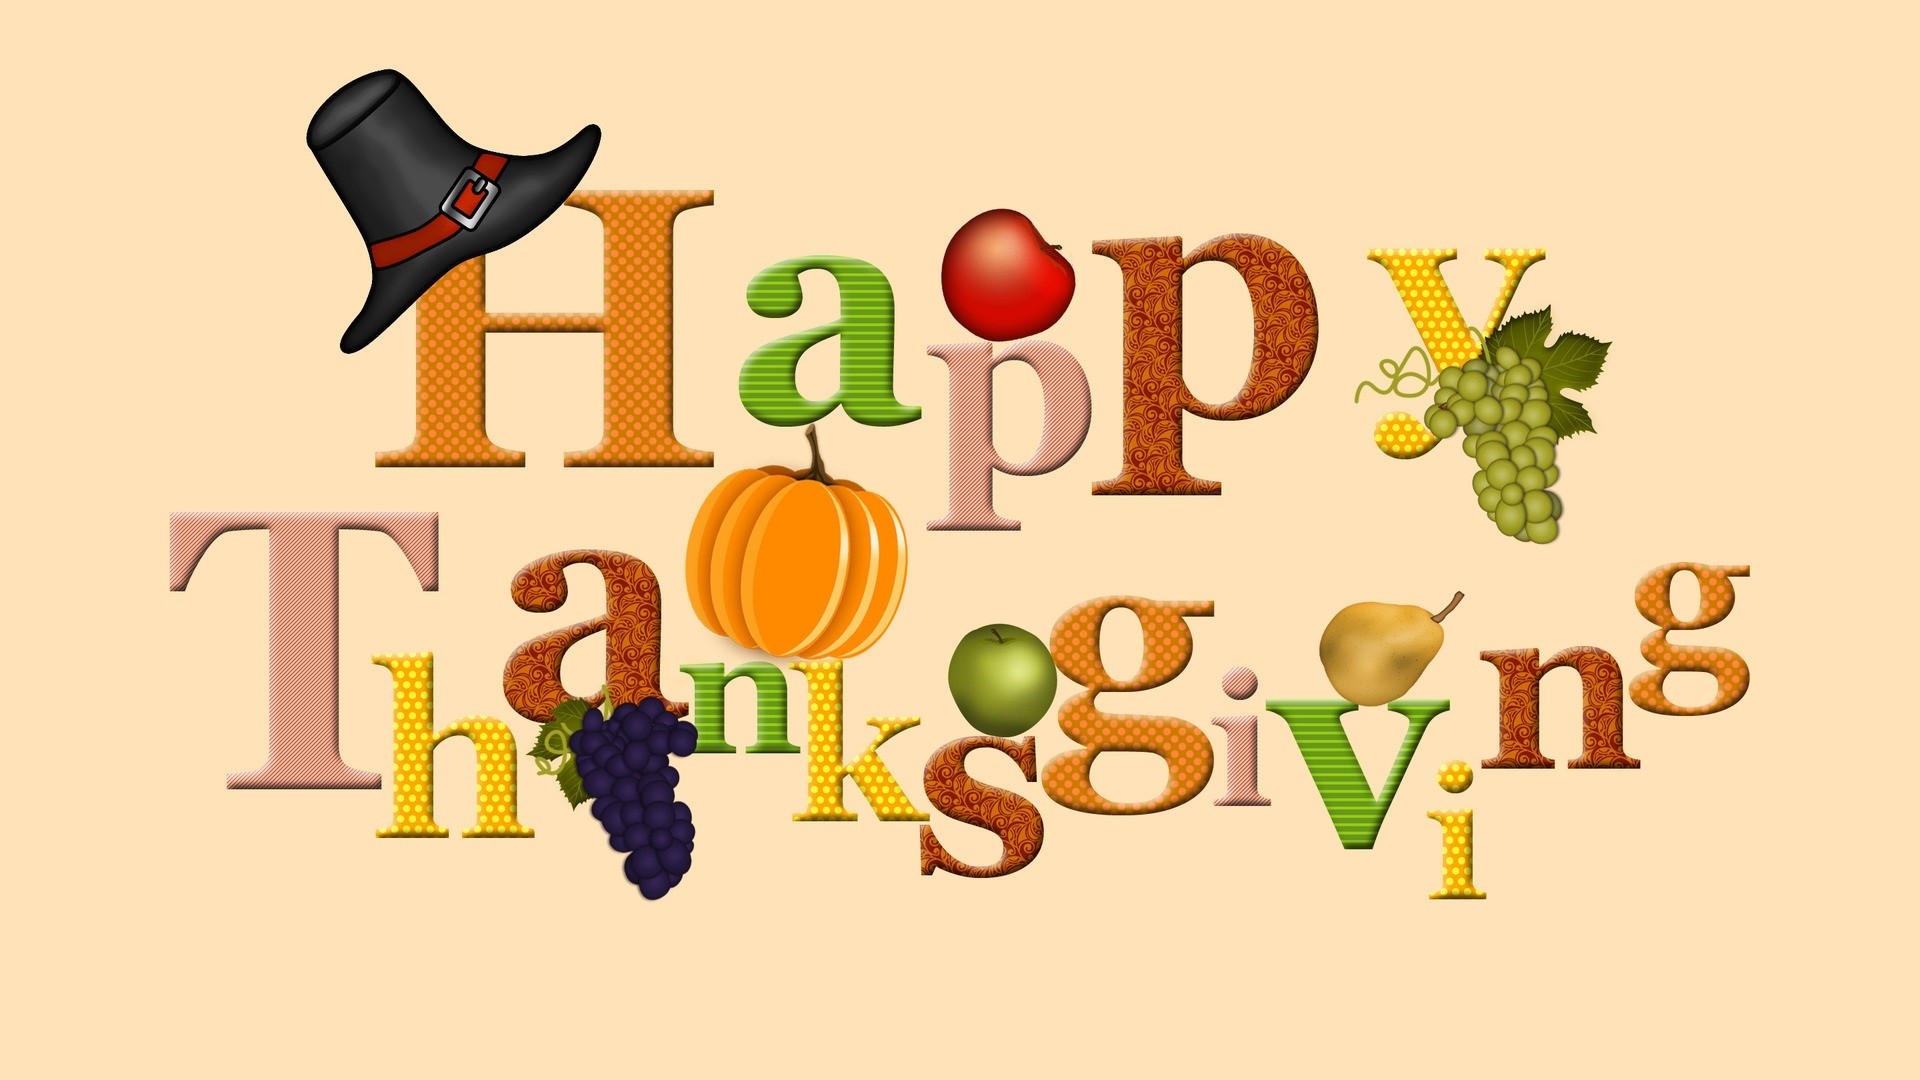 home happy thanksgiving day happy thanksgiving greetings images 1920x1080